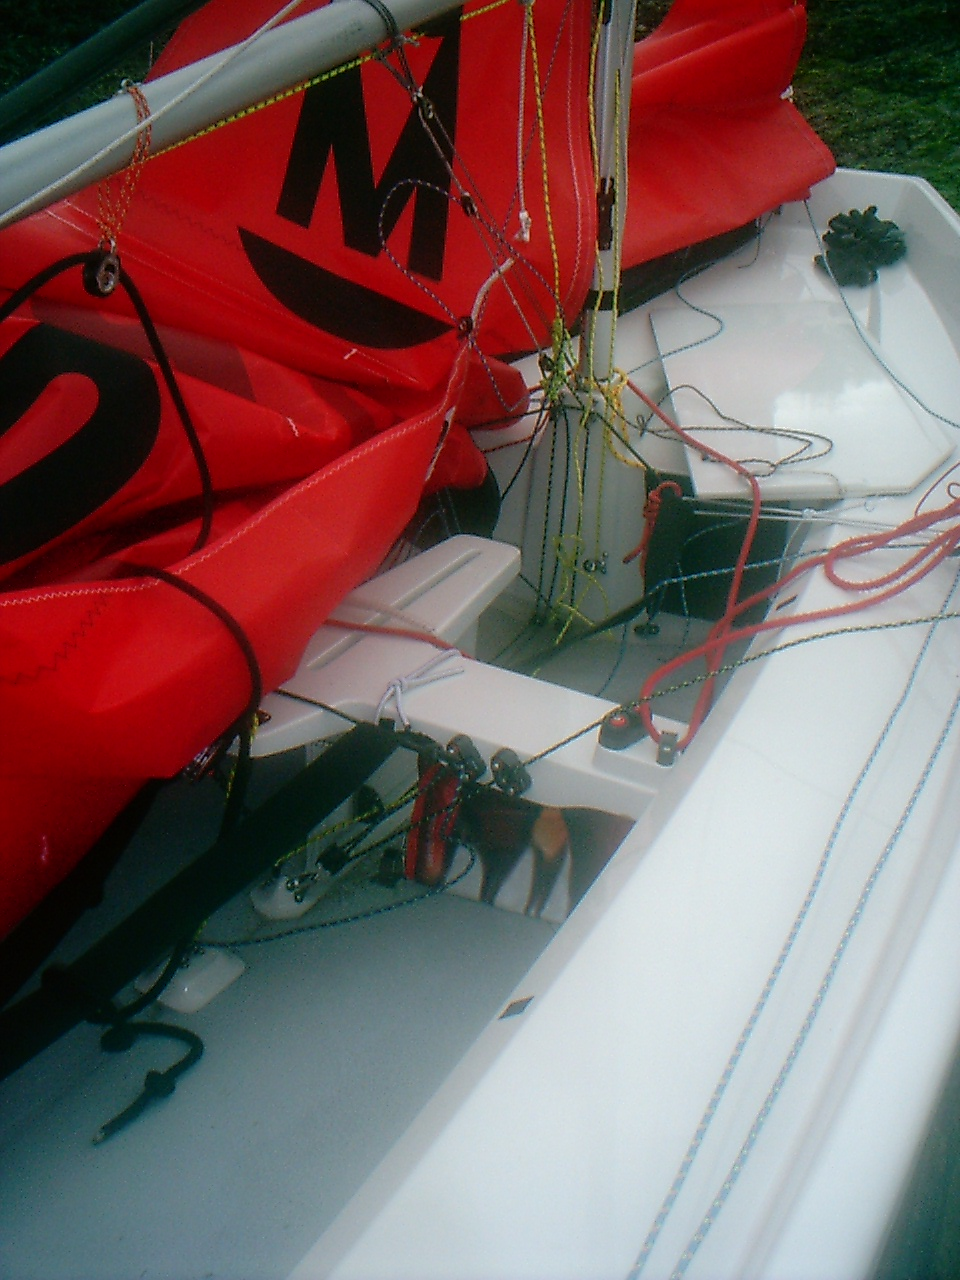 Duplicated mainsail controls (kicker, downhaul) on the thwart of a Winder Mirror dinghy